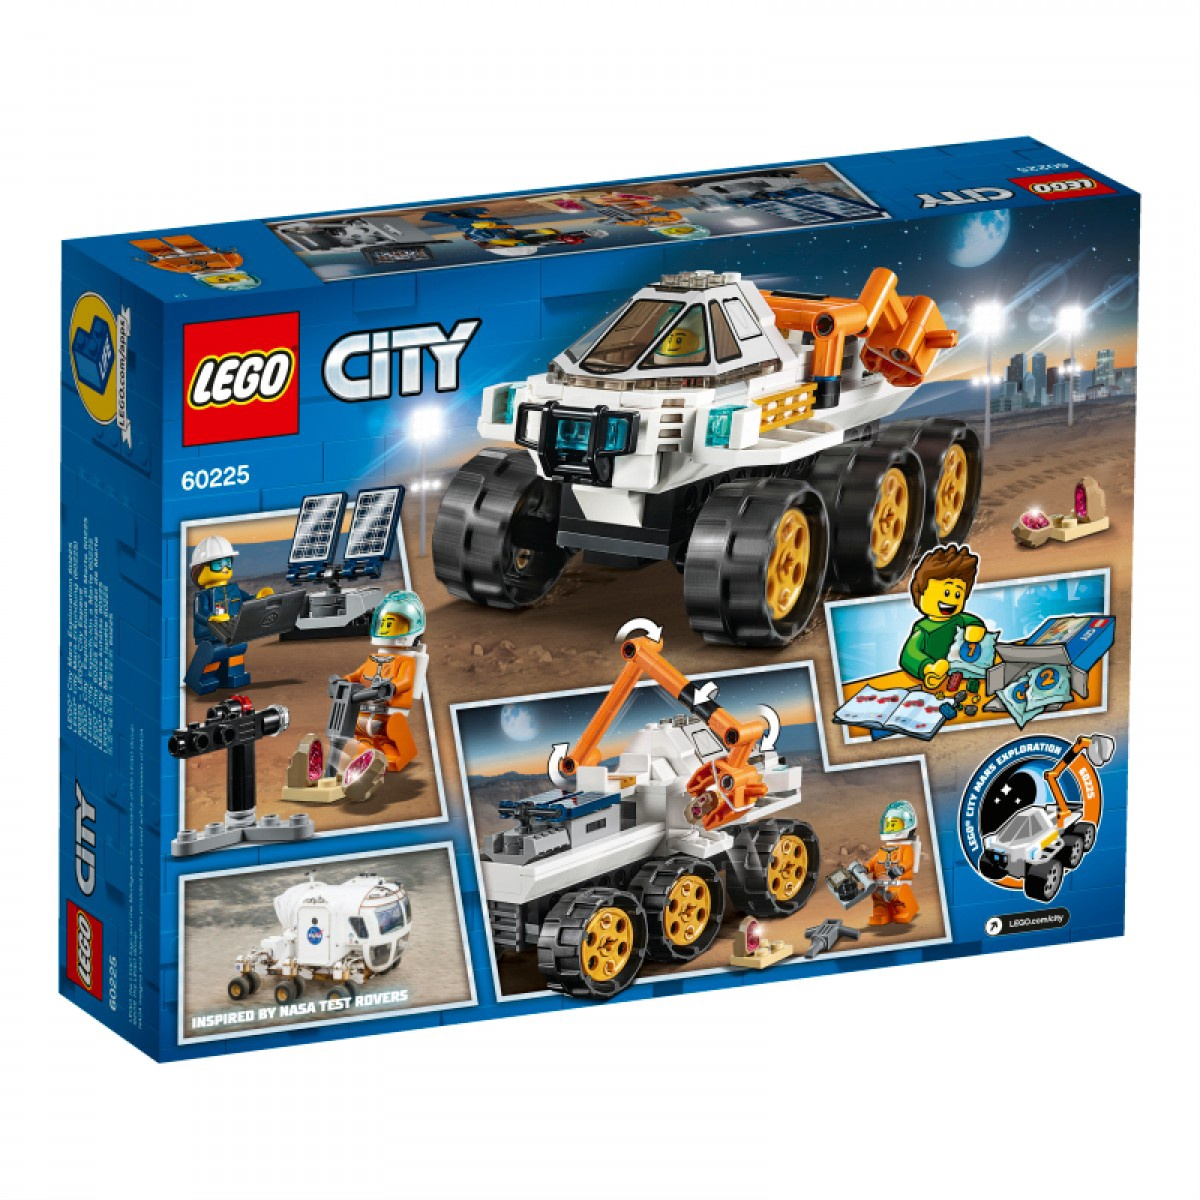 LEGO City Space Rover Testing Drive 60225 NASA-inspired Set w// Astronaut Figure